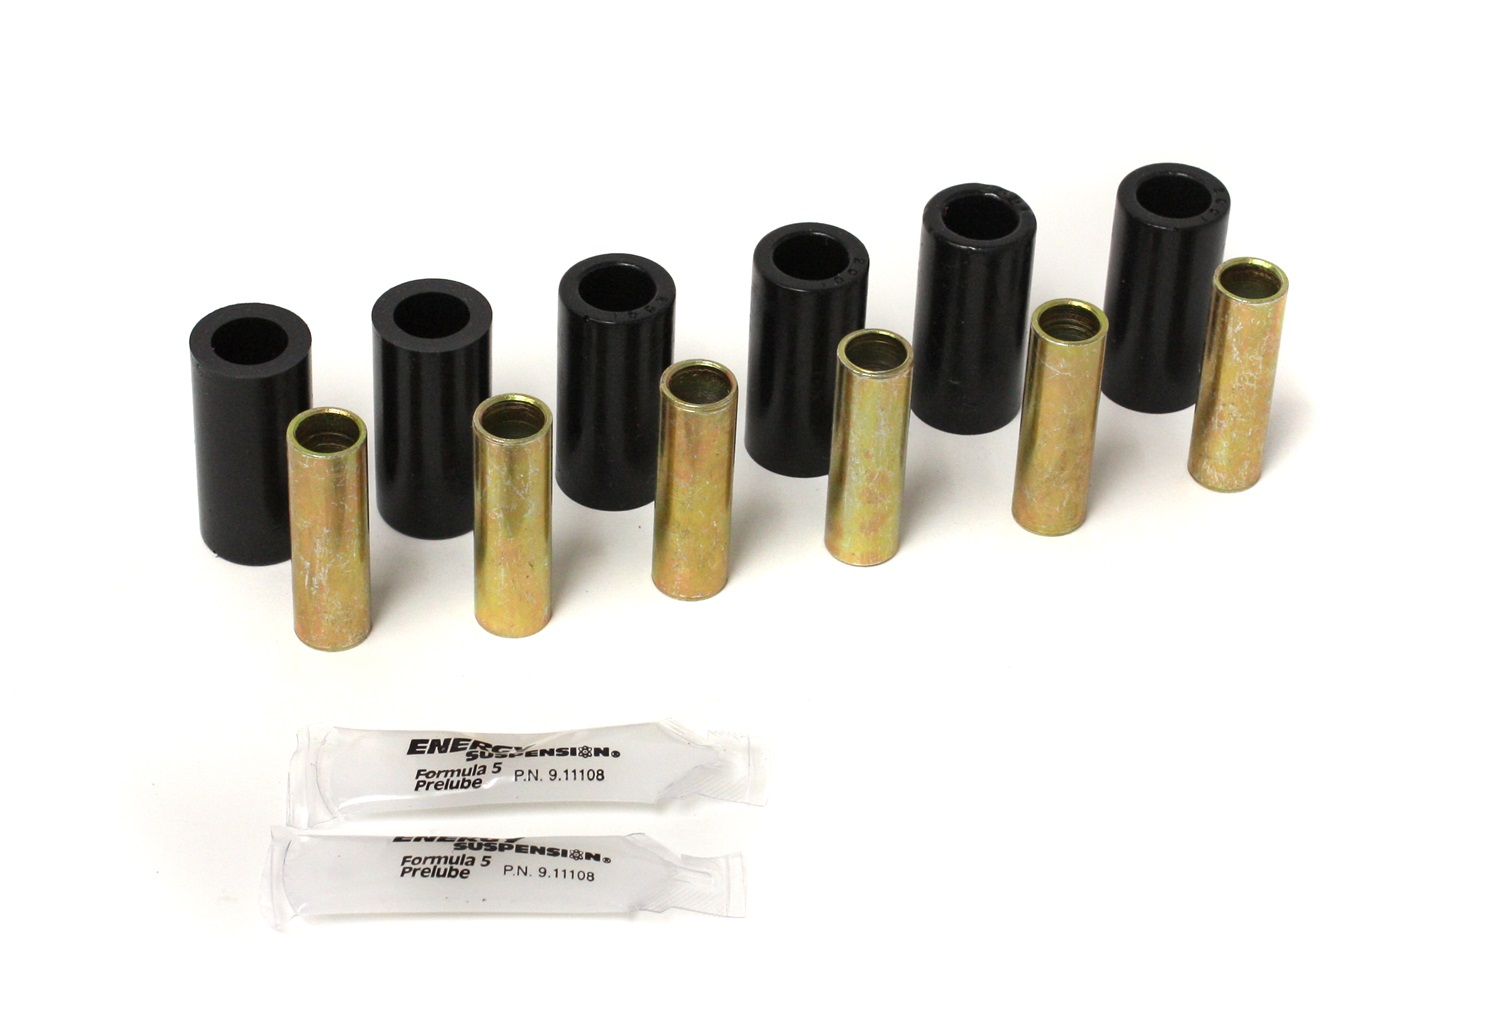 Energy Suspension Leaf Spring Bushing (2.2101G)